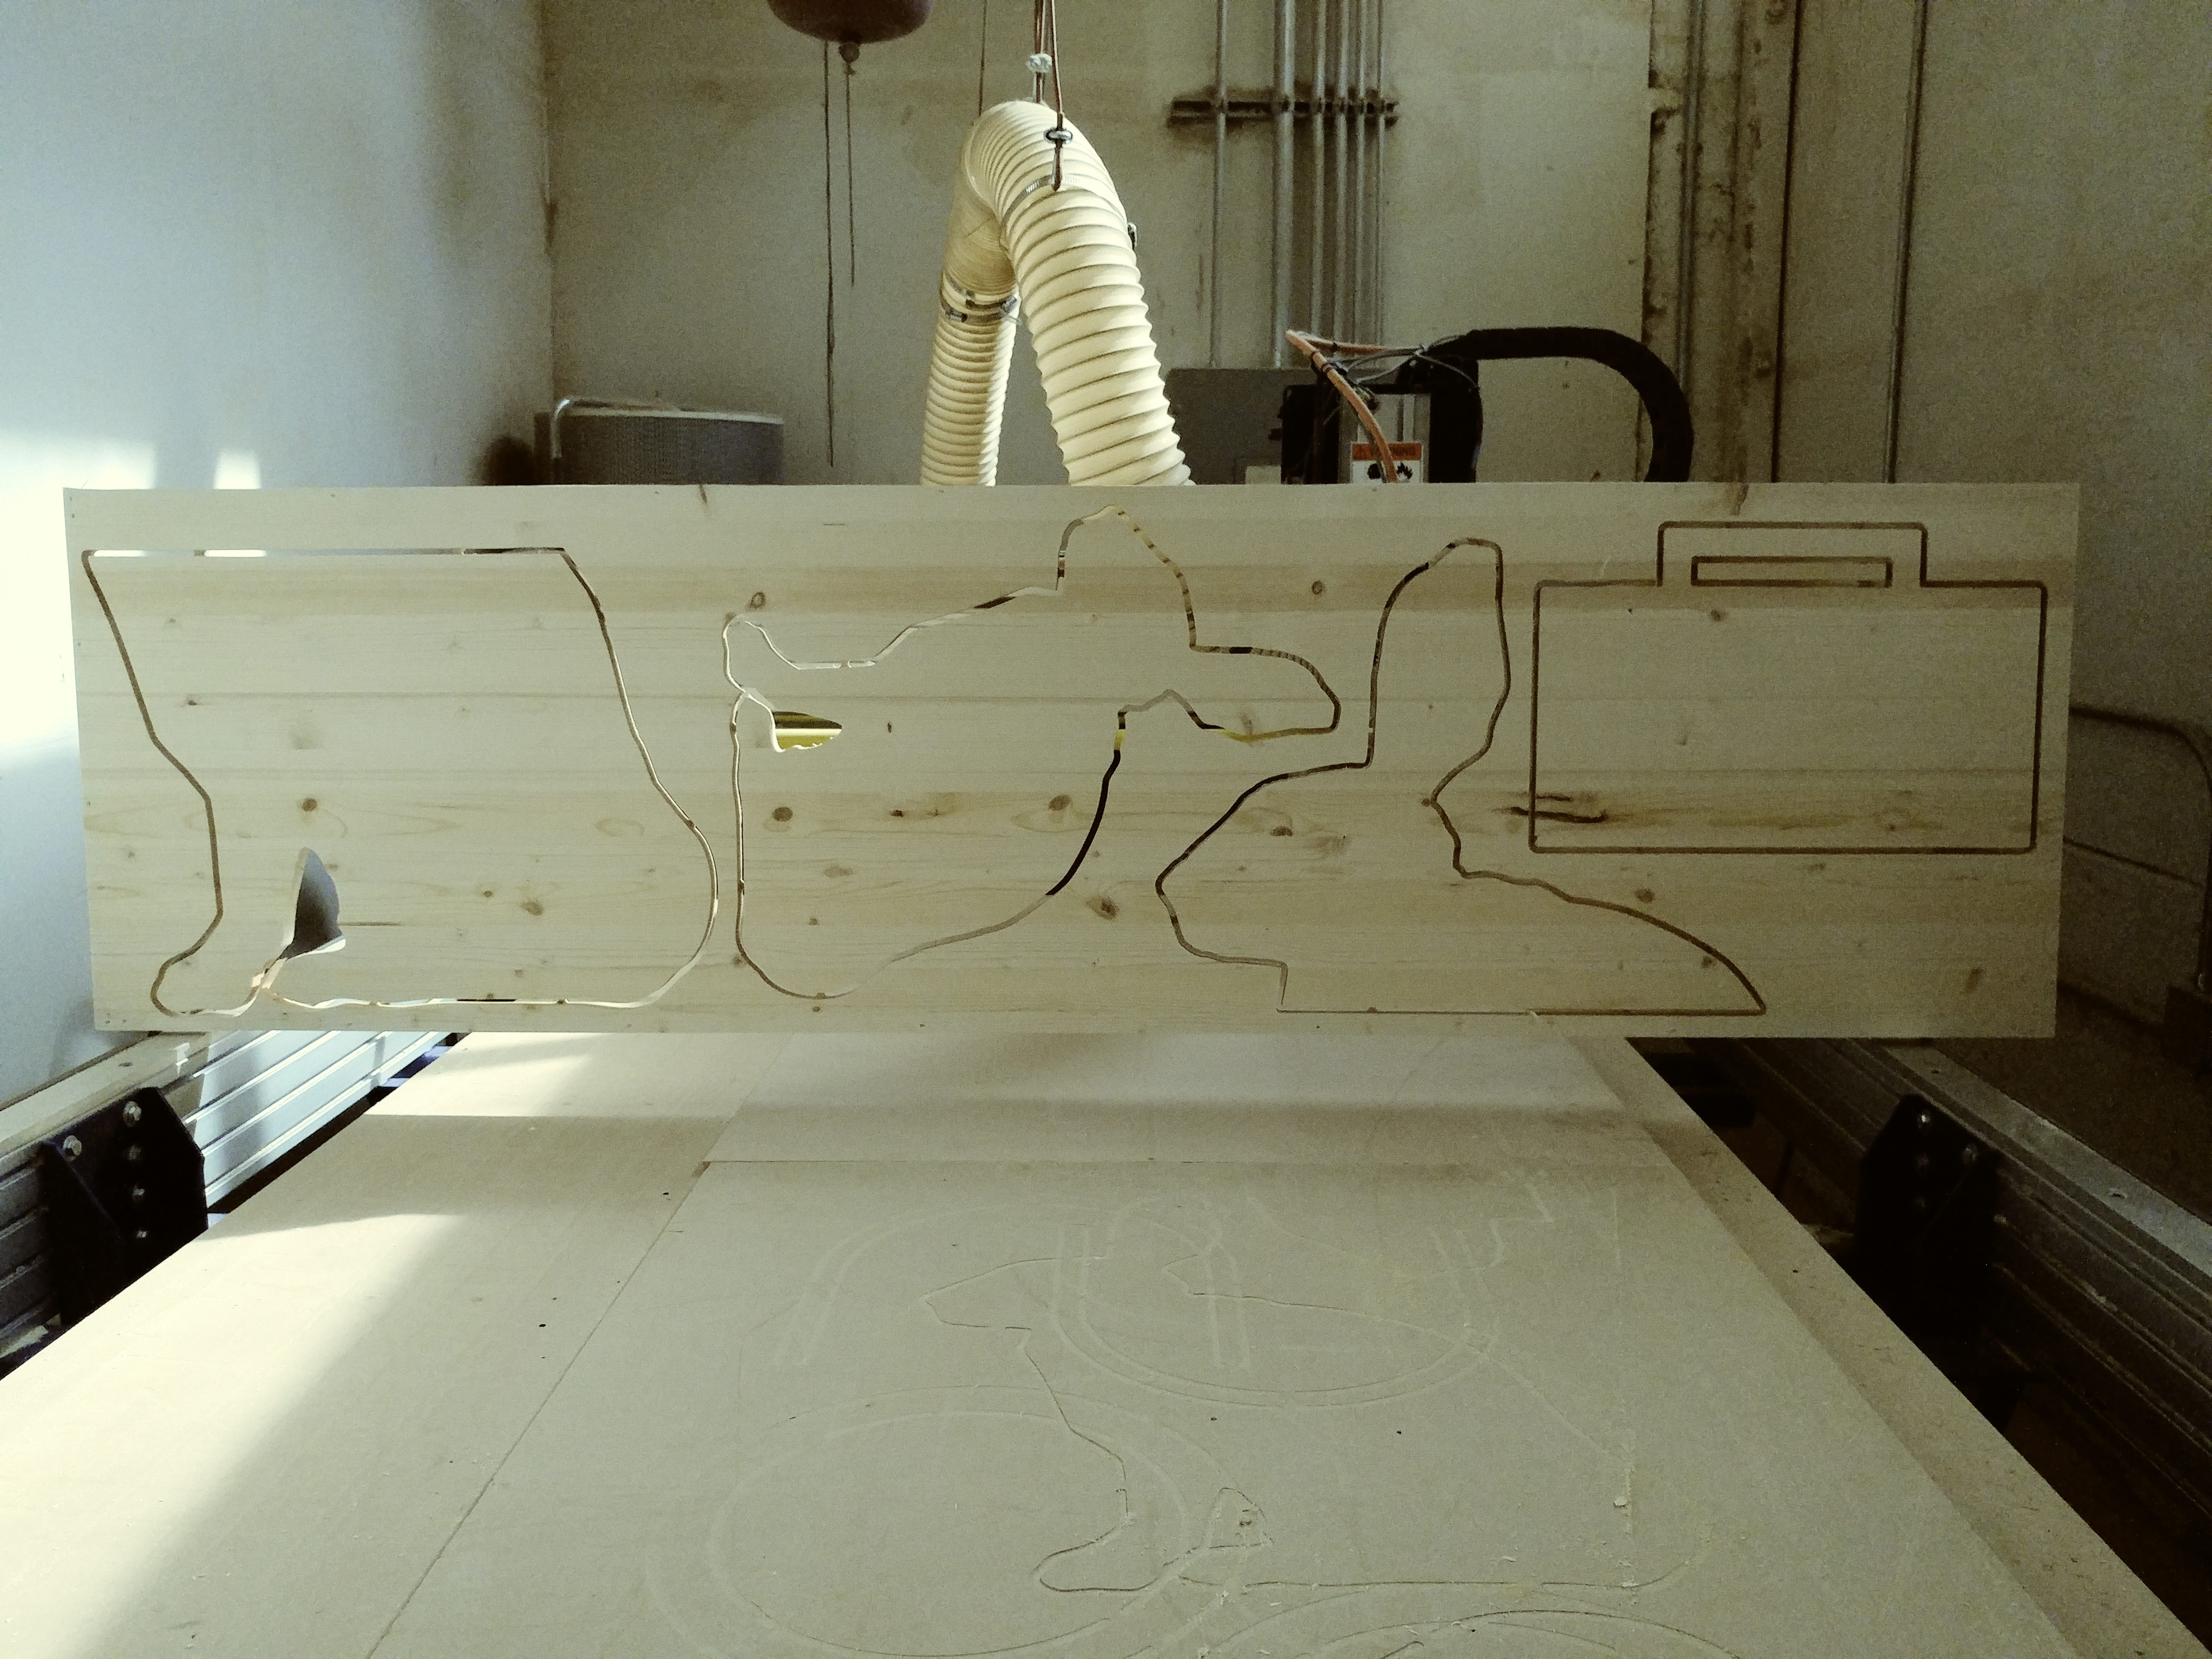 Picture of Next Step Was to Cad to Cam This Image and Cut It Out of Wood